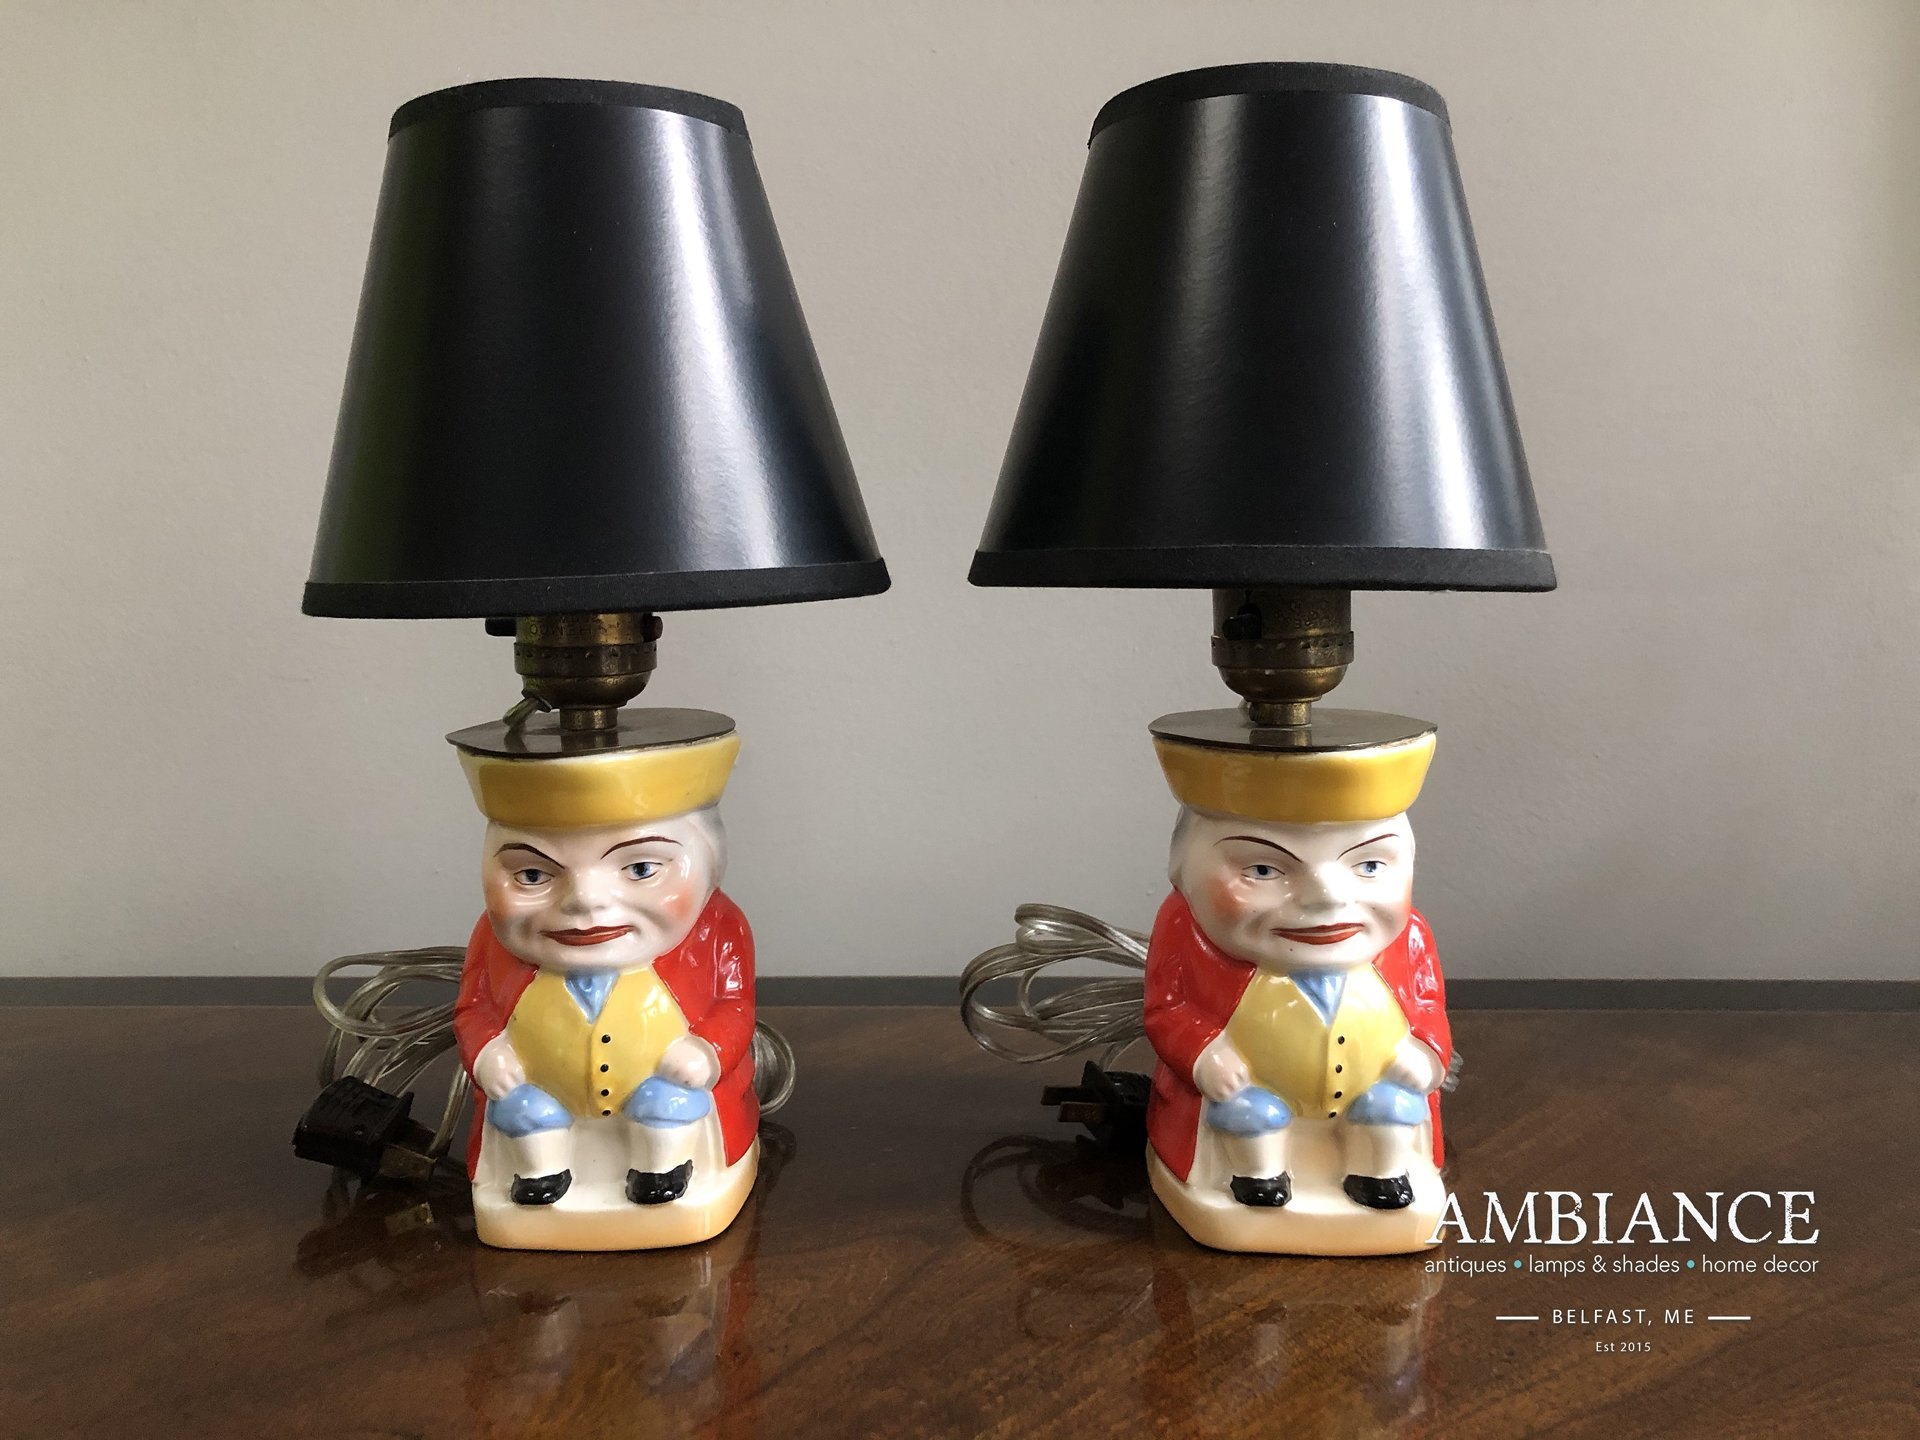 1930s Toby Jug Vintage Lamp for sale online at AMBIANCE (01)